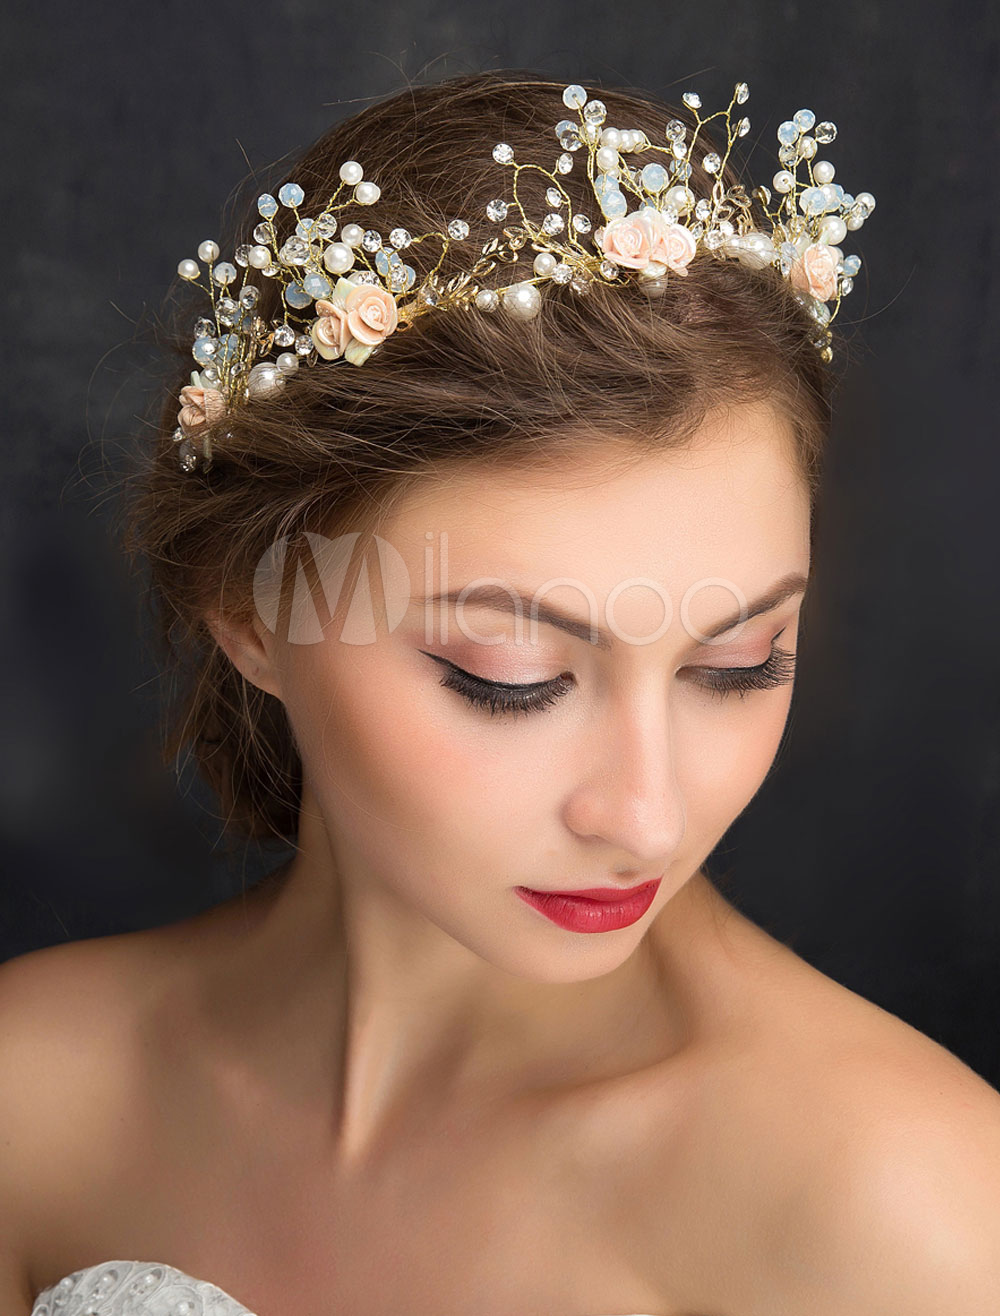 Wedding Hair Headband Gold Rhinestone Imitation Pearls Bridal Headpiece